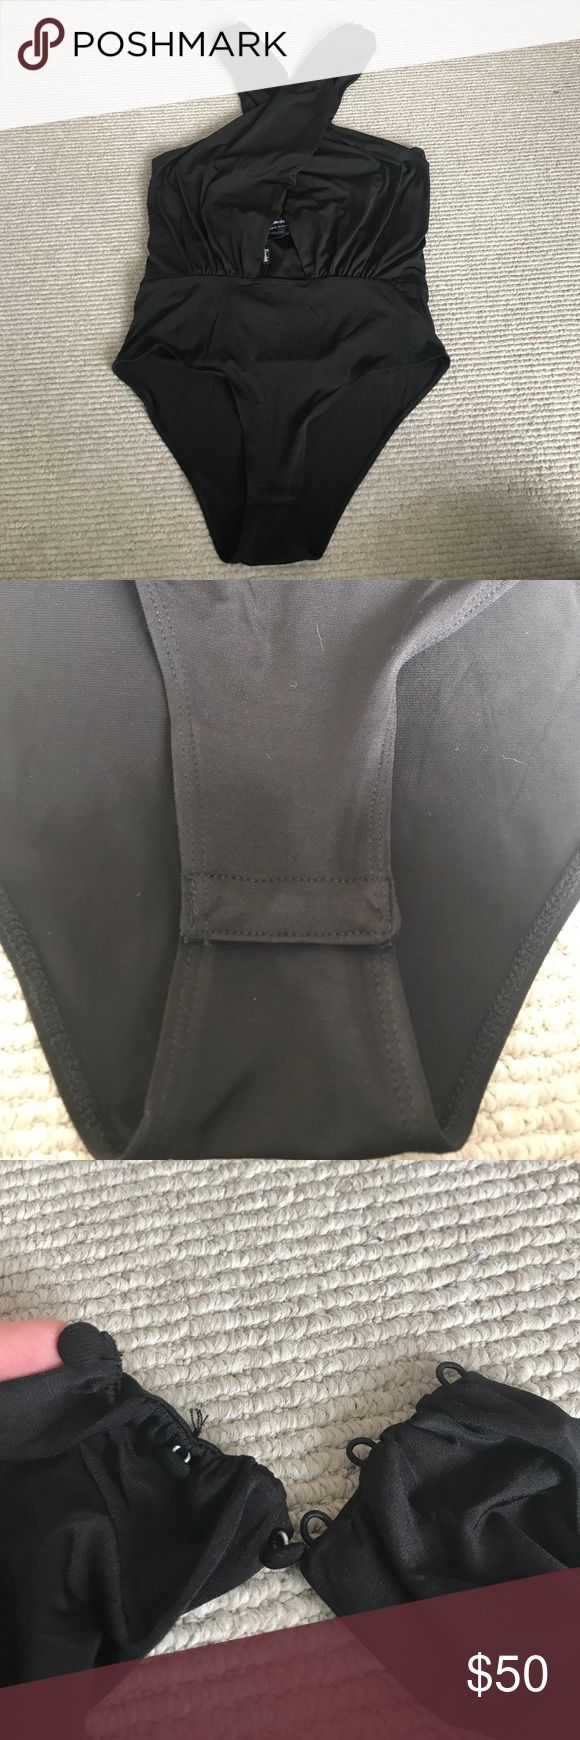 NWT Bardot Wrapped Up Body Suit Black body suit with opening on upper stomach. Wrap around halter with 3 button closures. Never worn. Size medium good for sizes 4-8 in my opinion. Lots of stretch and give all over. Claps closure underneath. (But you can step into it as well). Bardot Intimates & Sleepwear Bandeaus